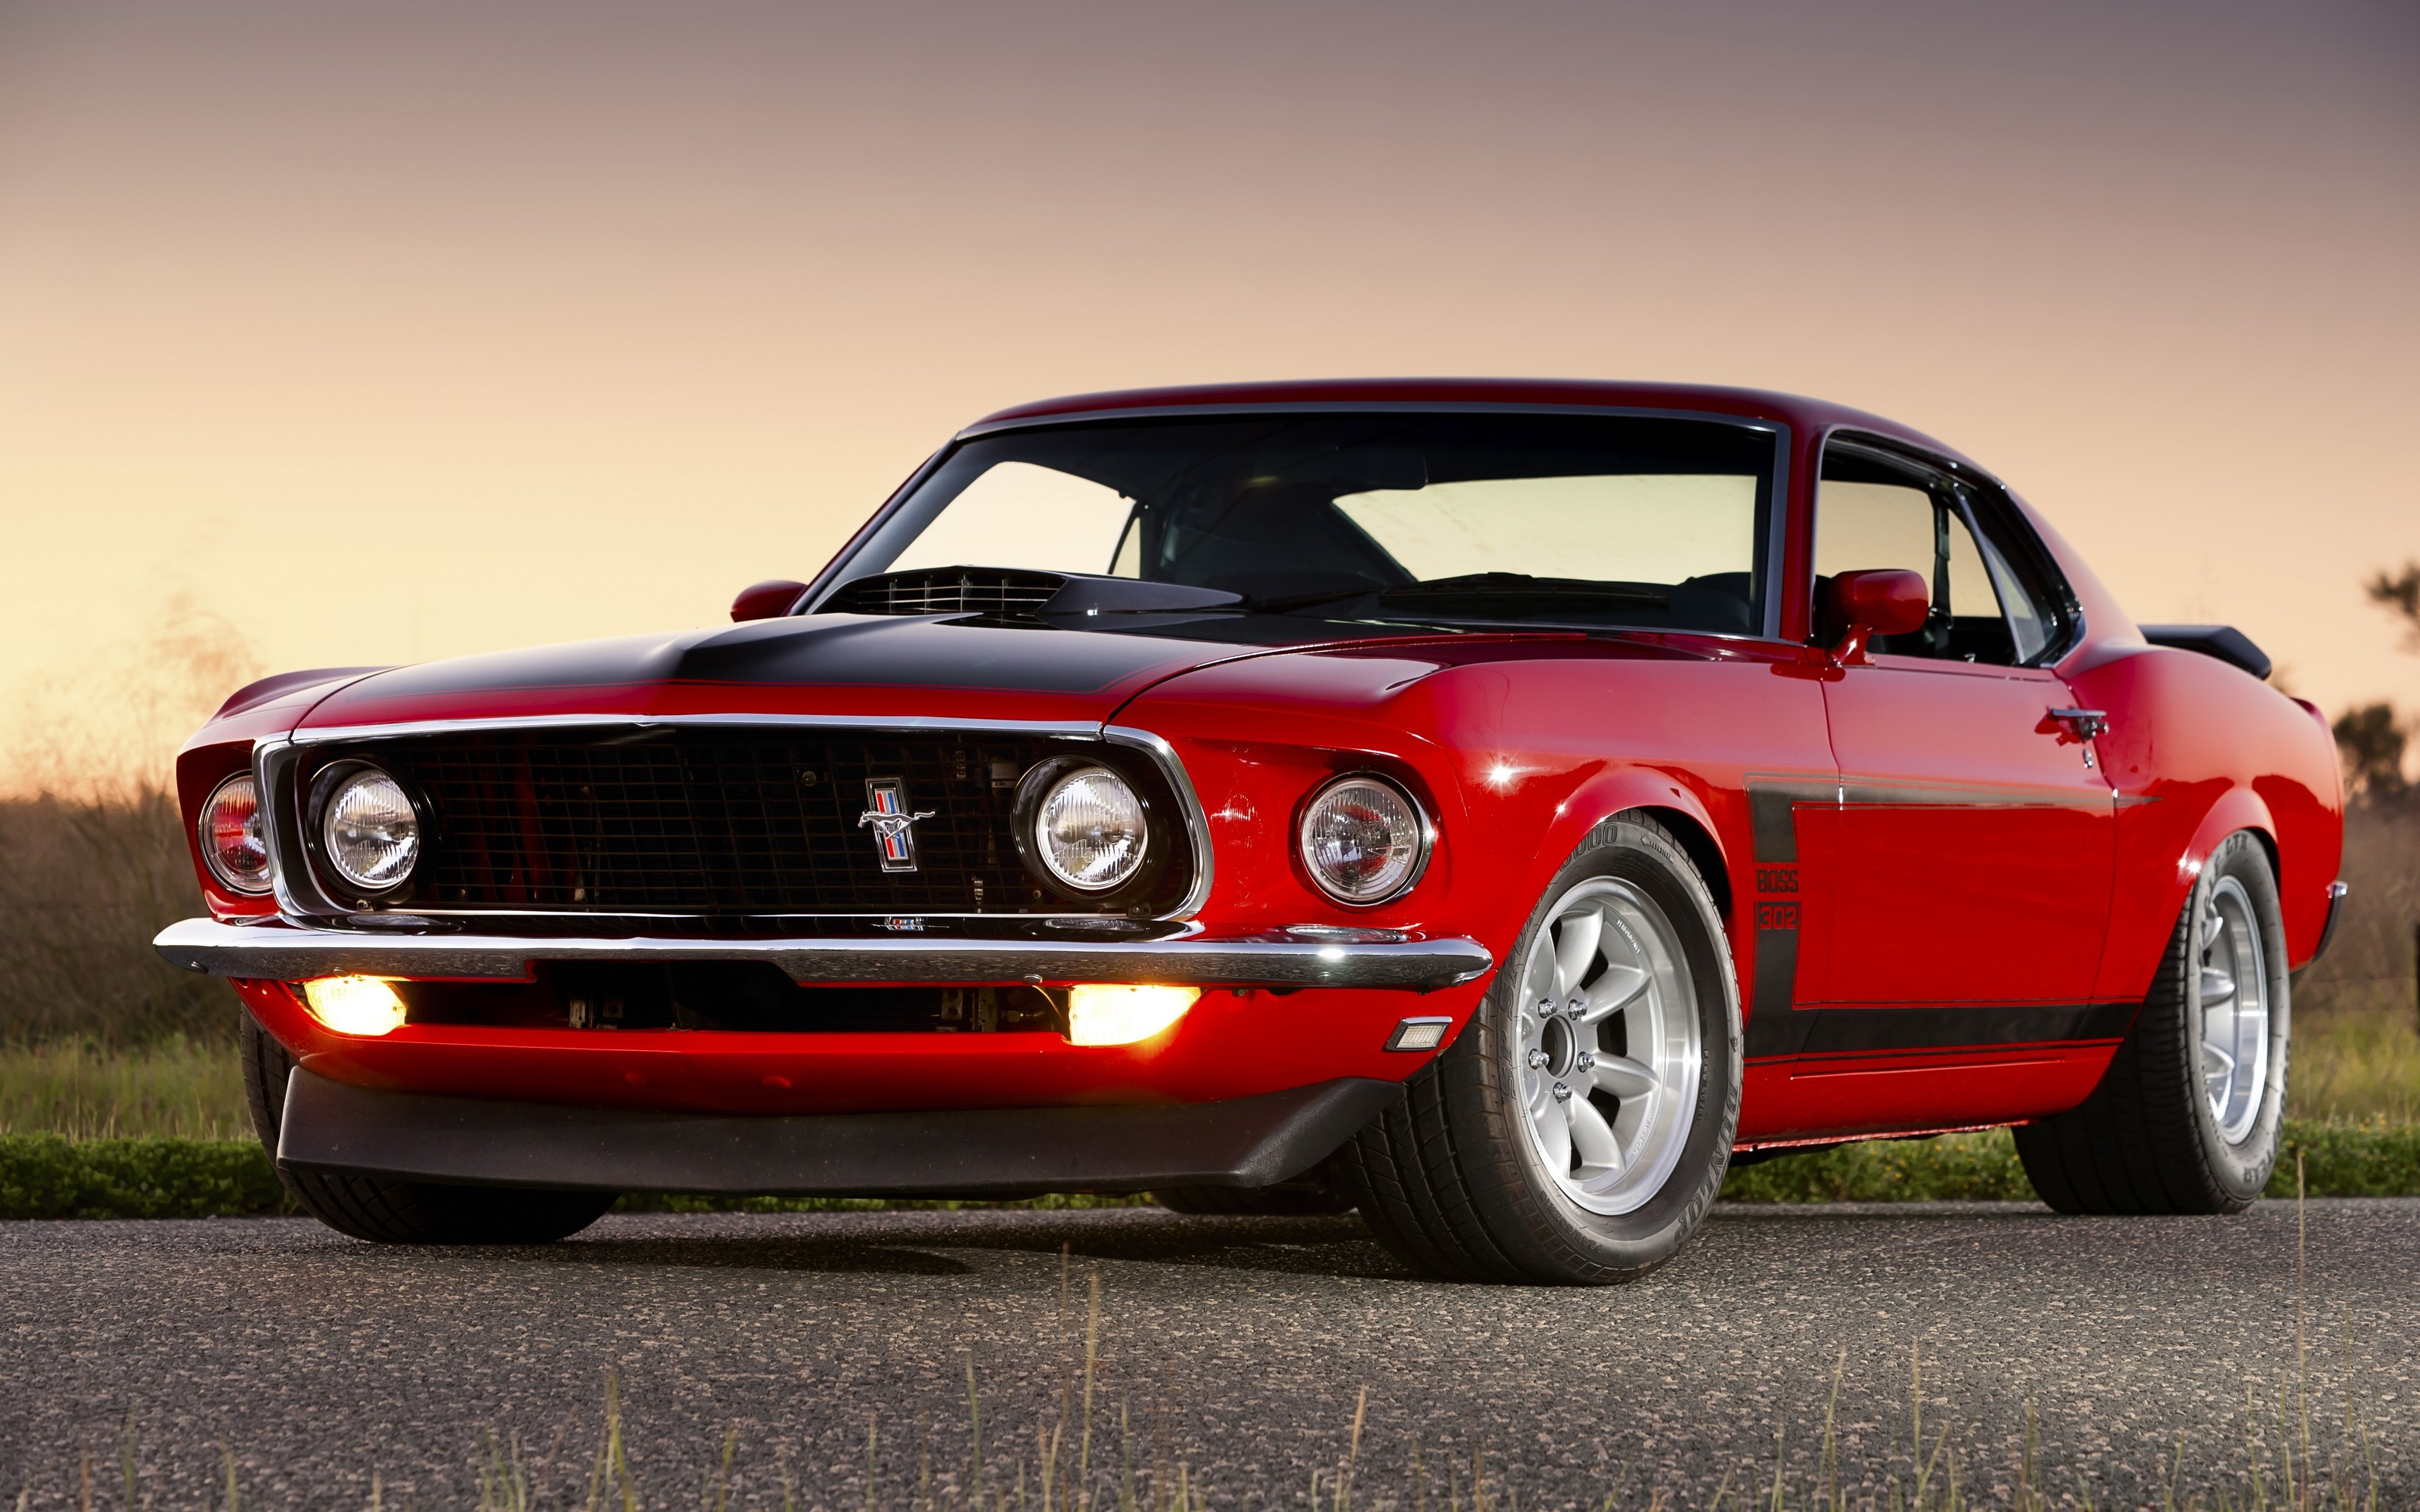 Ford Mustang Boss 302 Wallpapers 36 Images Dodowallpaper